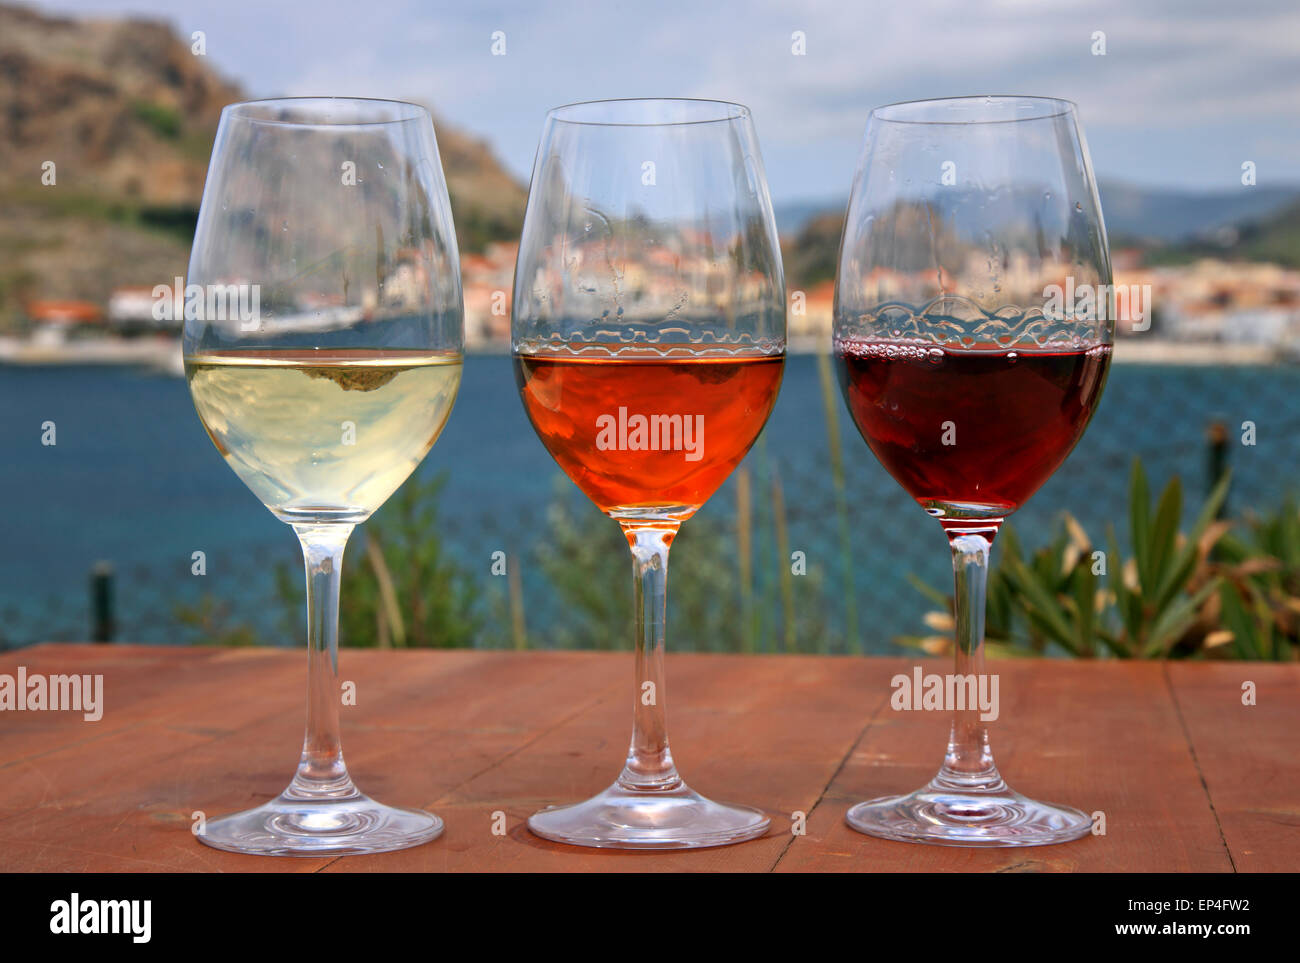 Lemnos island is famous for its local products, especially cheese & wines. - Stock Image